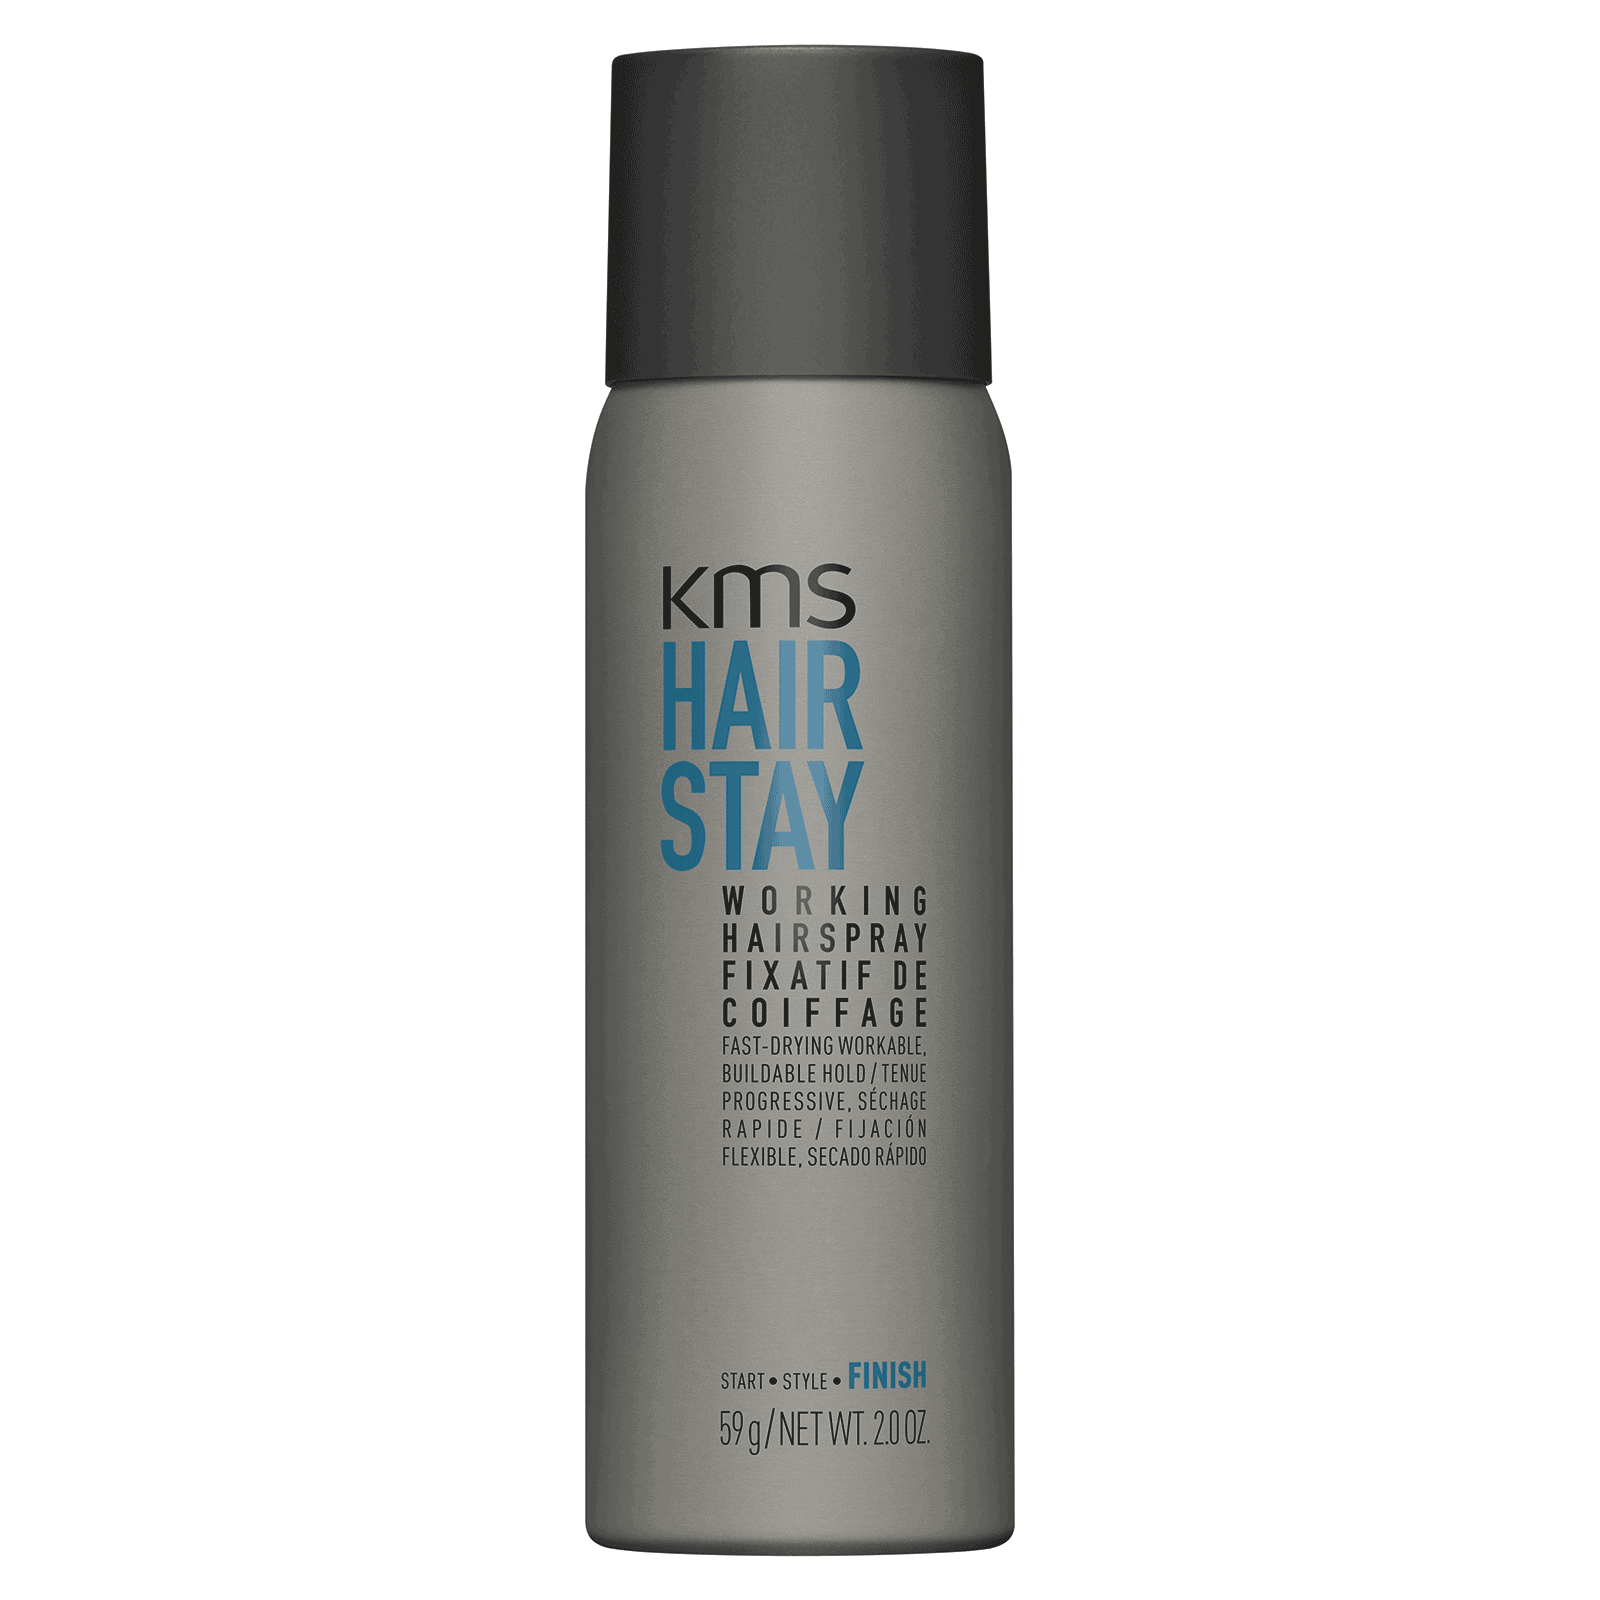 HAIRSTAY working spray travel size